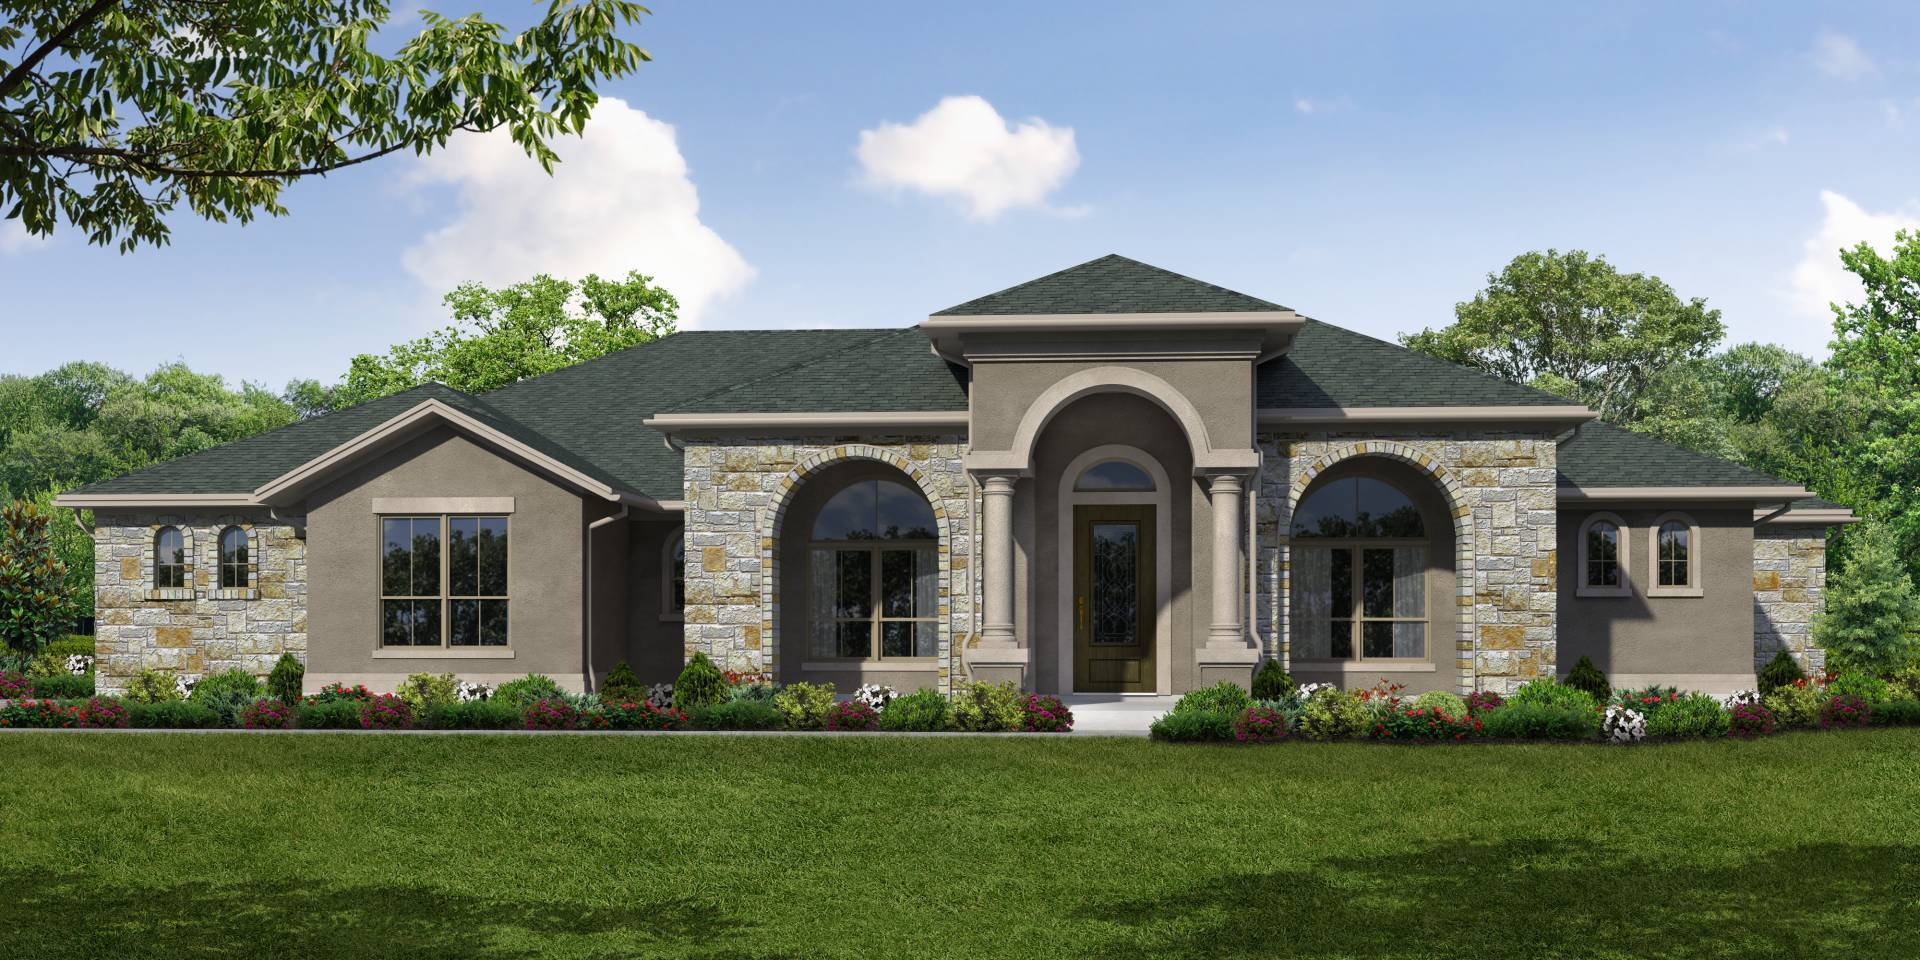 Build on your lot homes in austin tx for New modern homes in austin tx